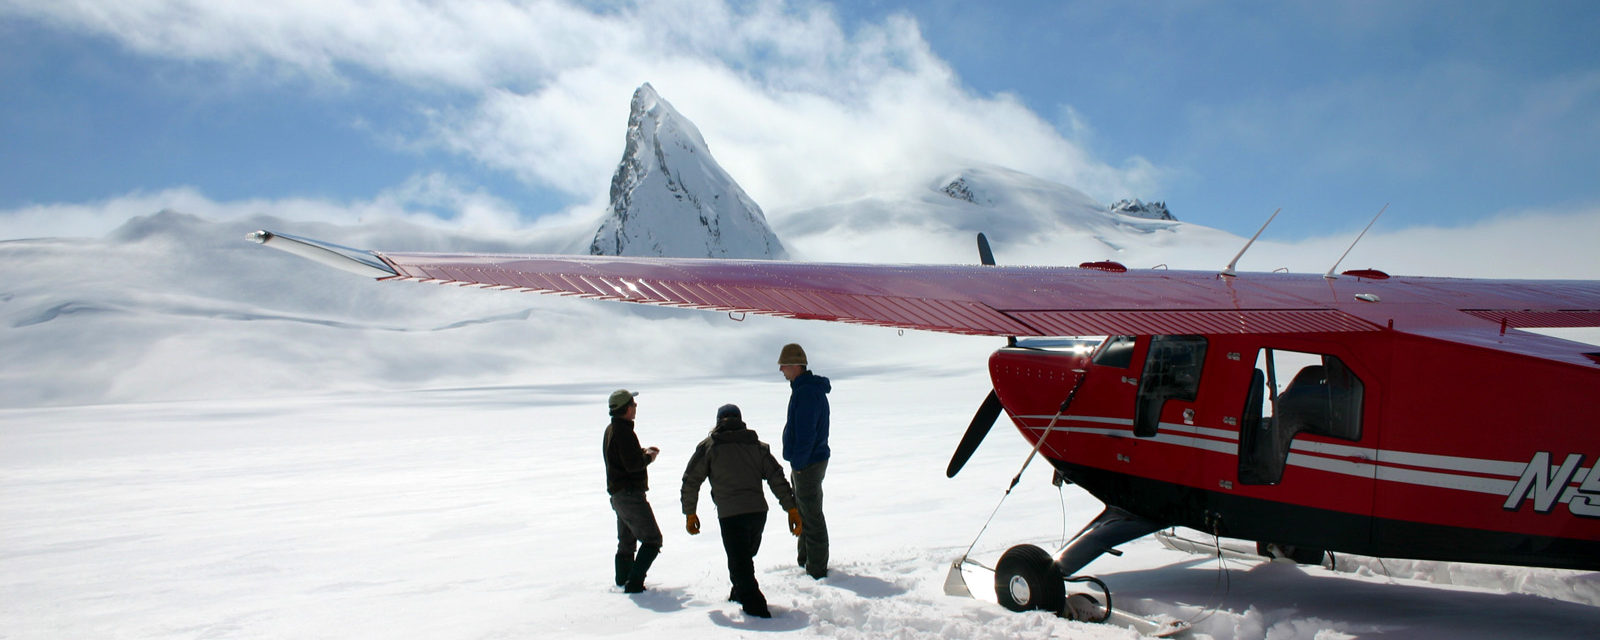 Ski plane landing on the glacier